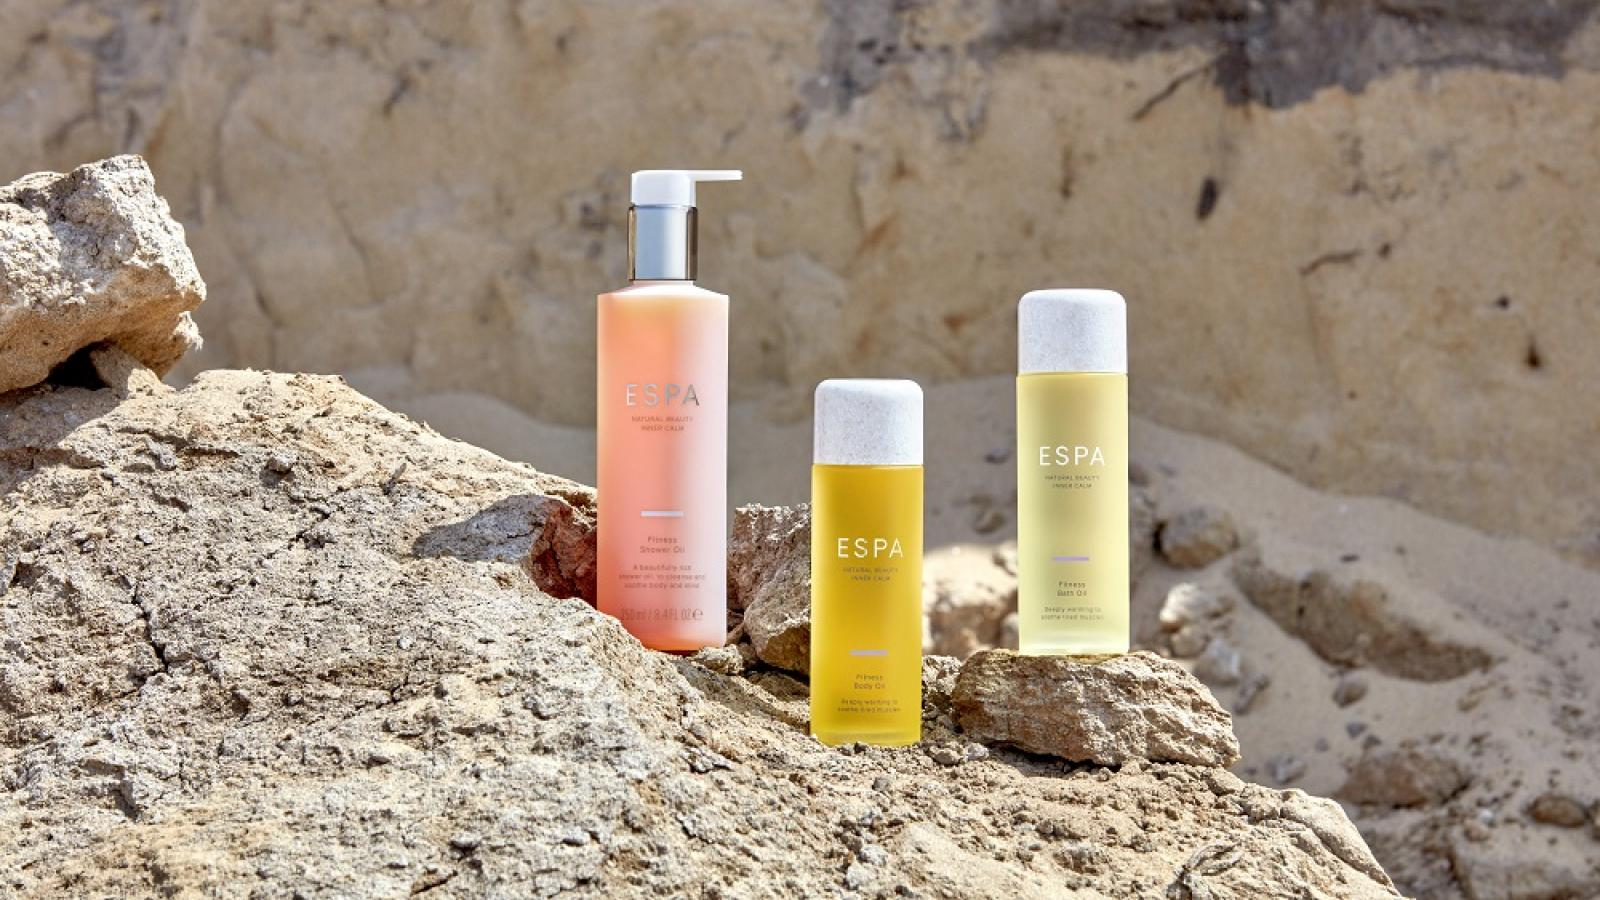 Re-create the ESPA experience at home with your favorite ESPA products and packs